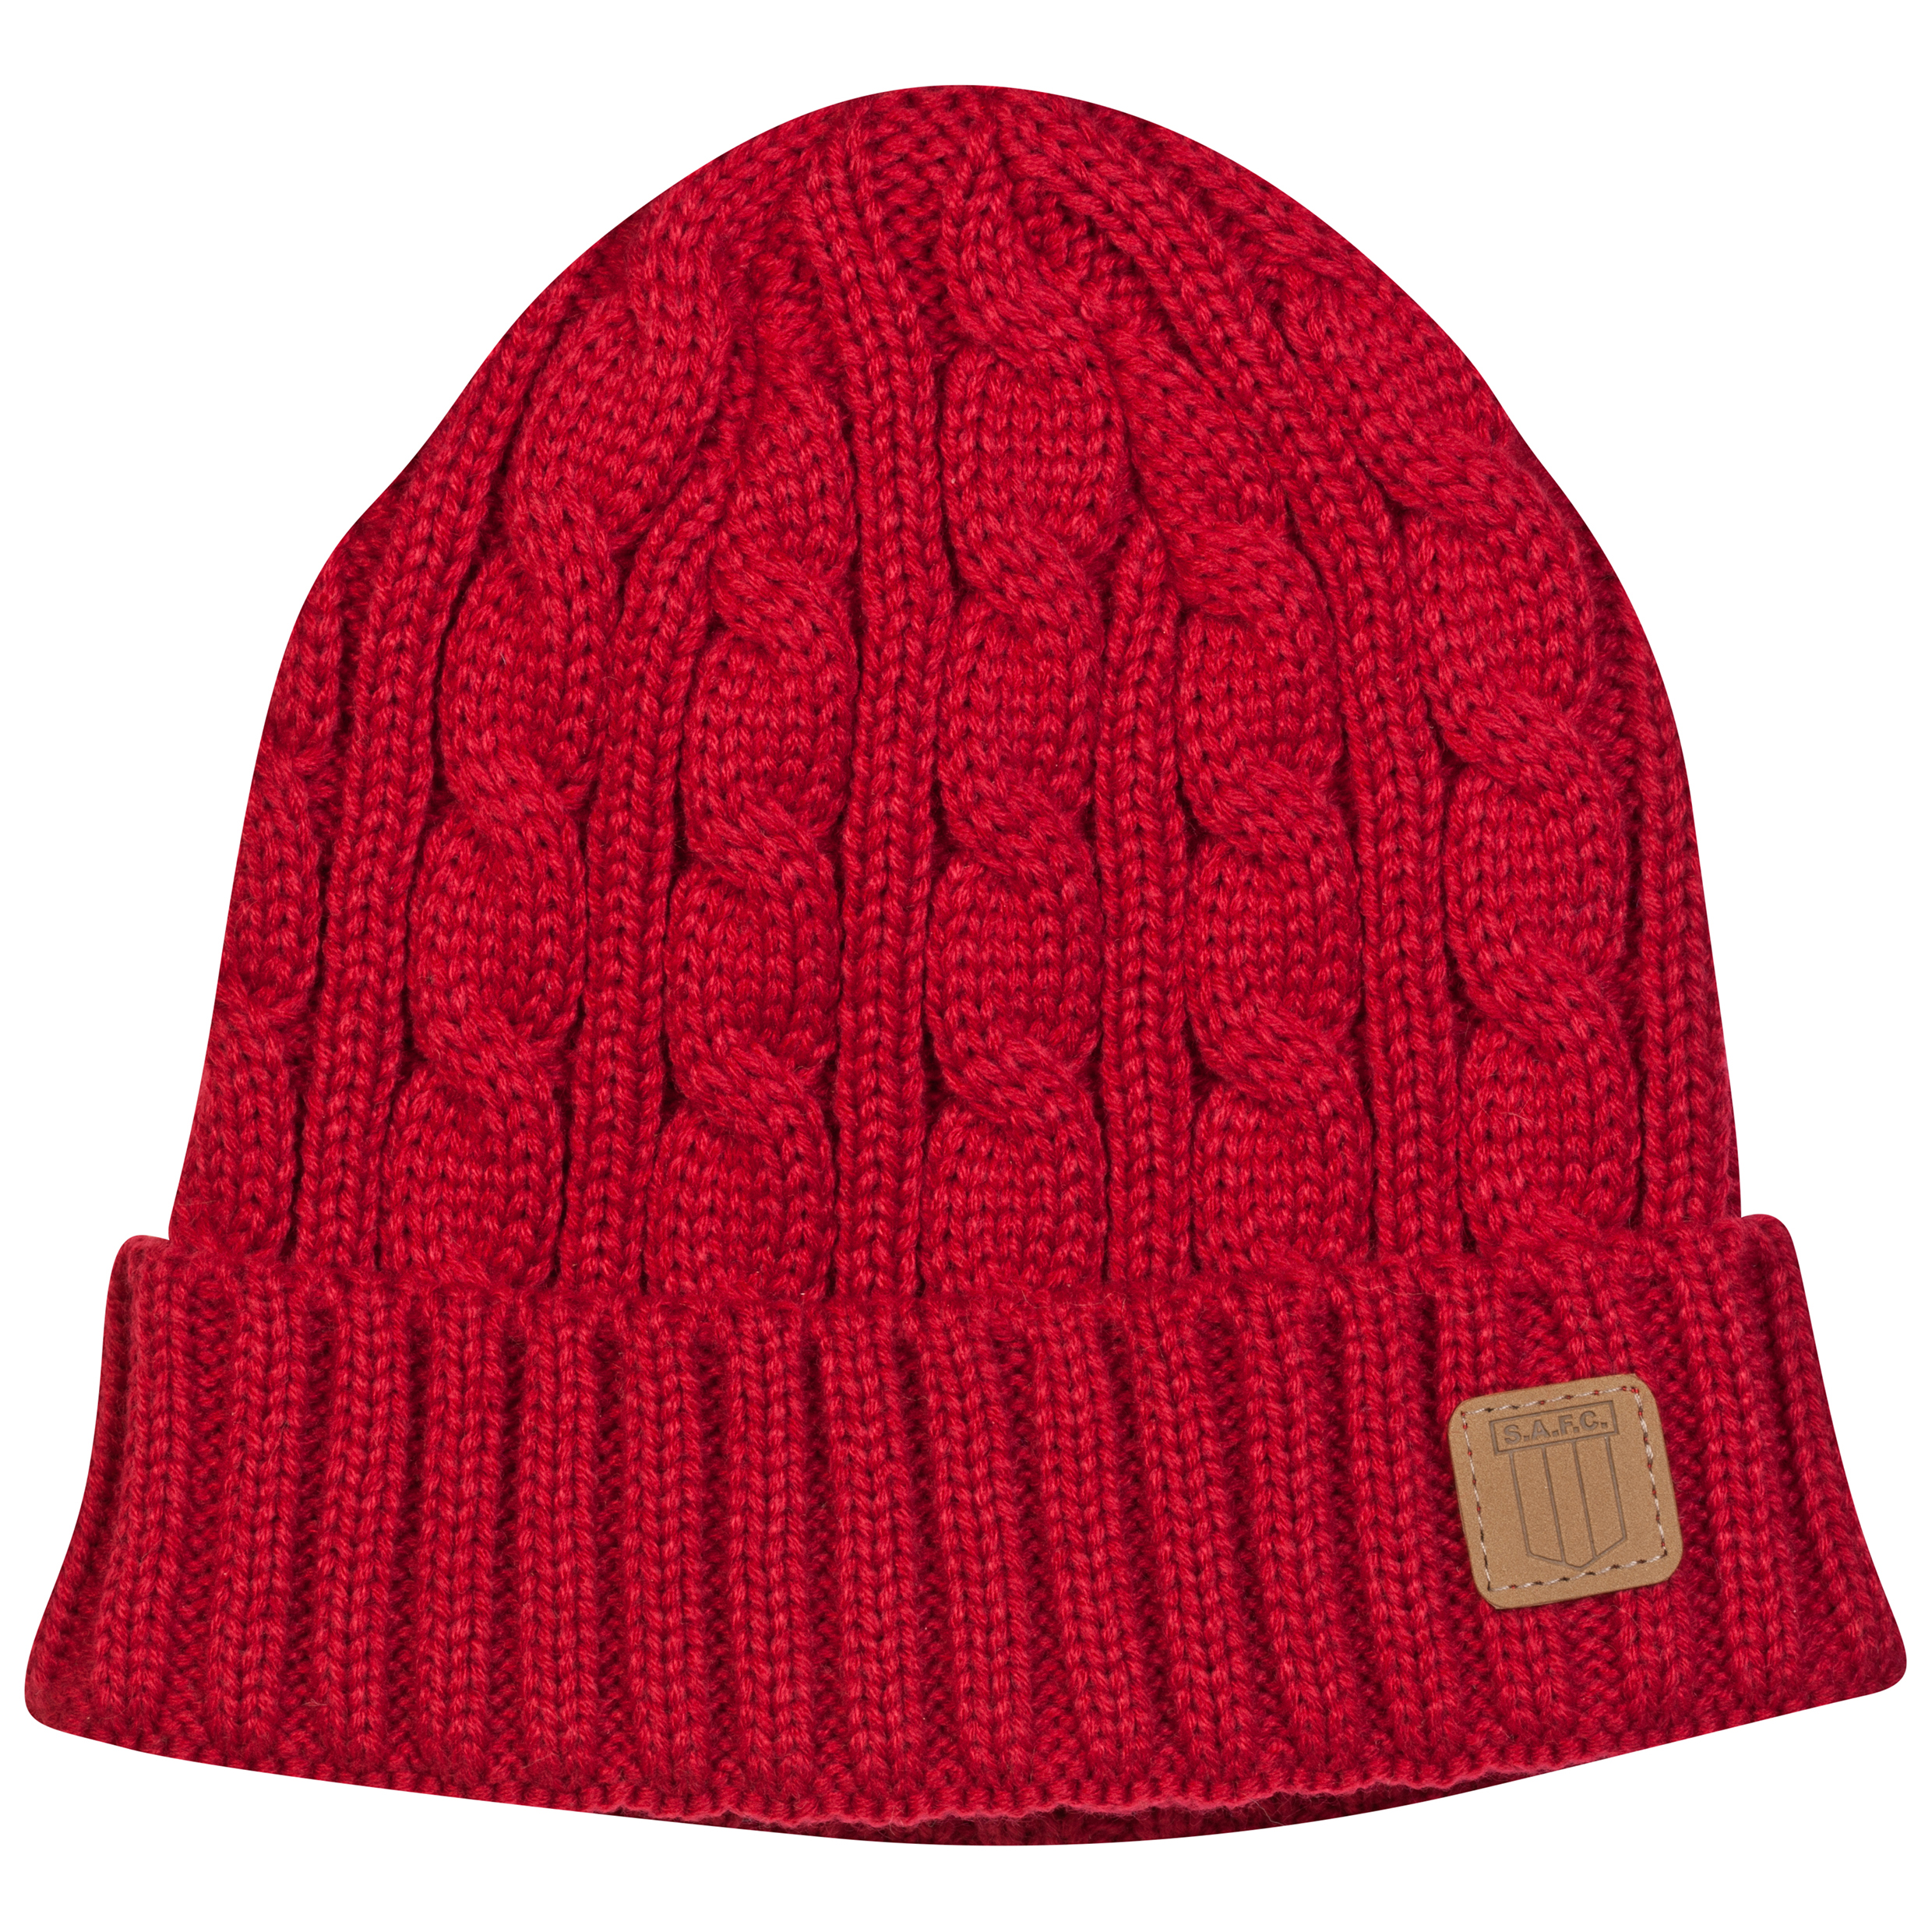 Sunderland Hat - Burgundy - Adult